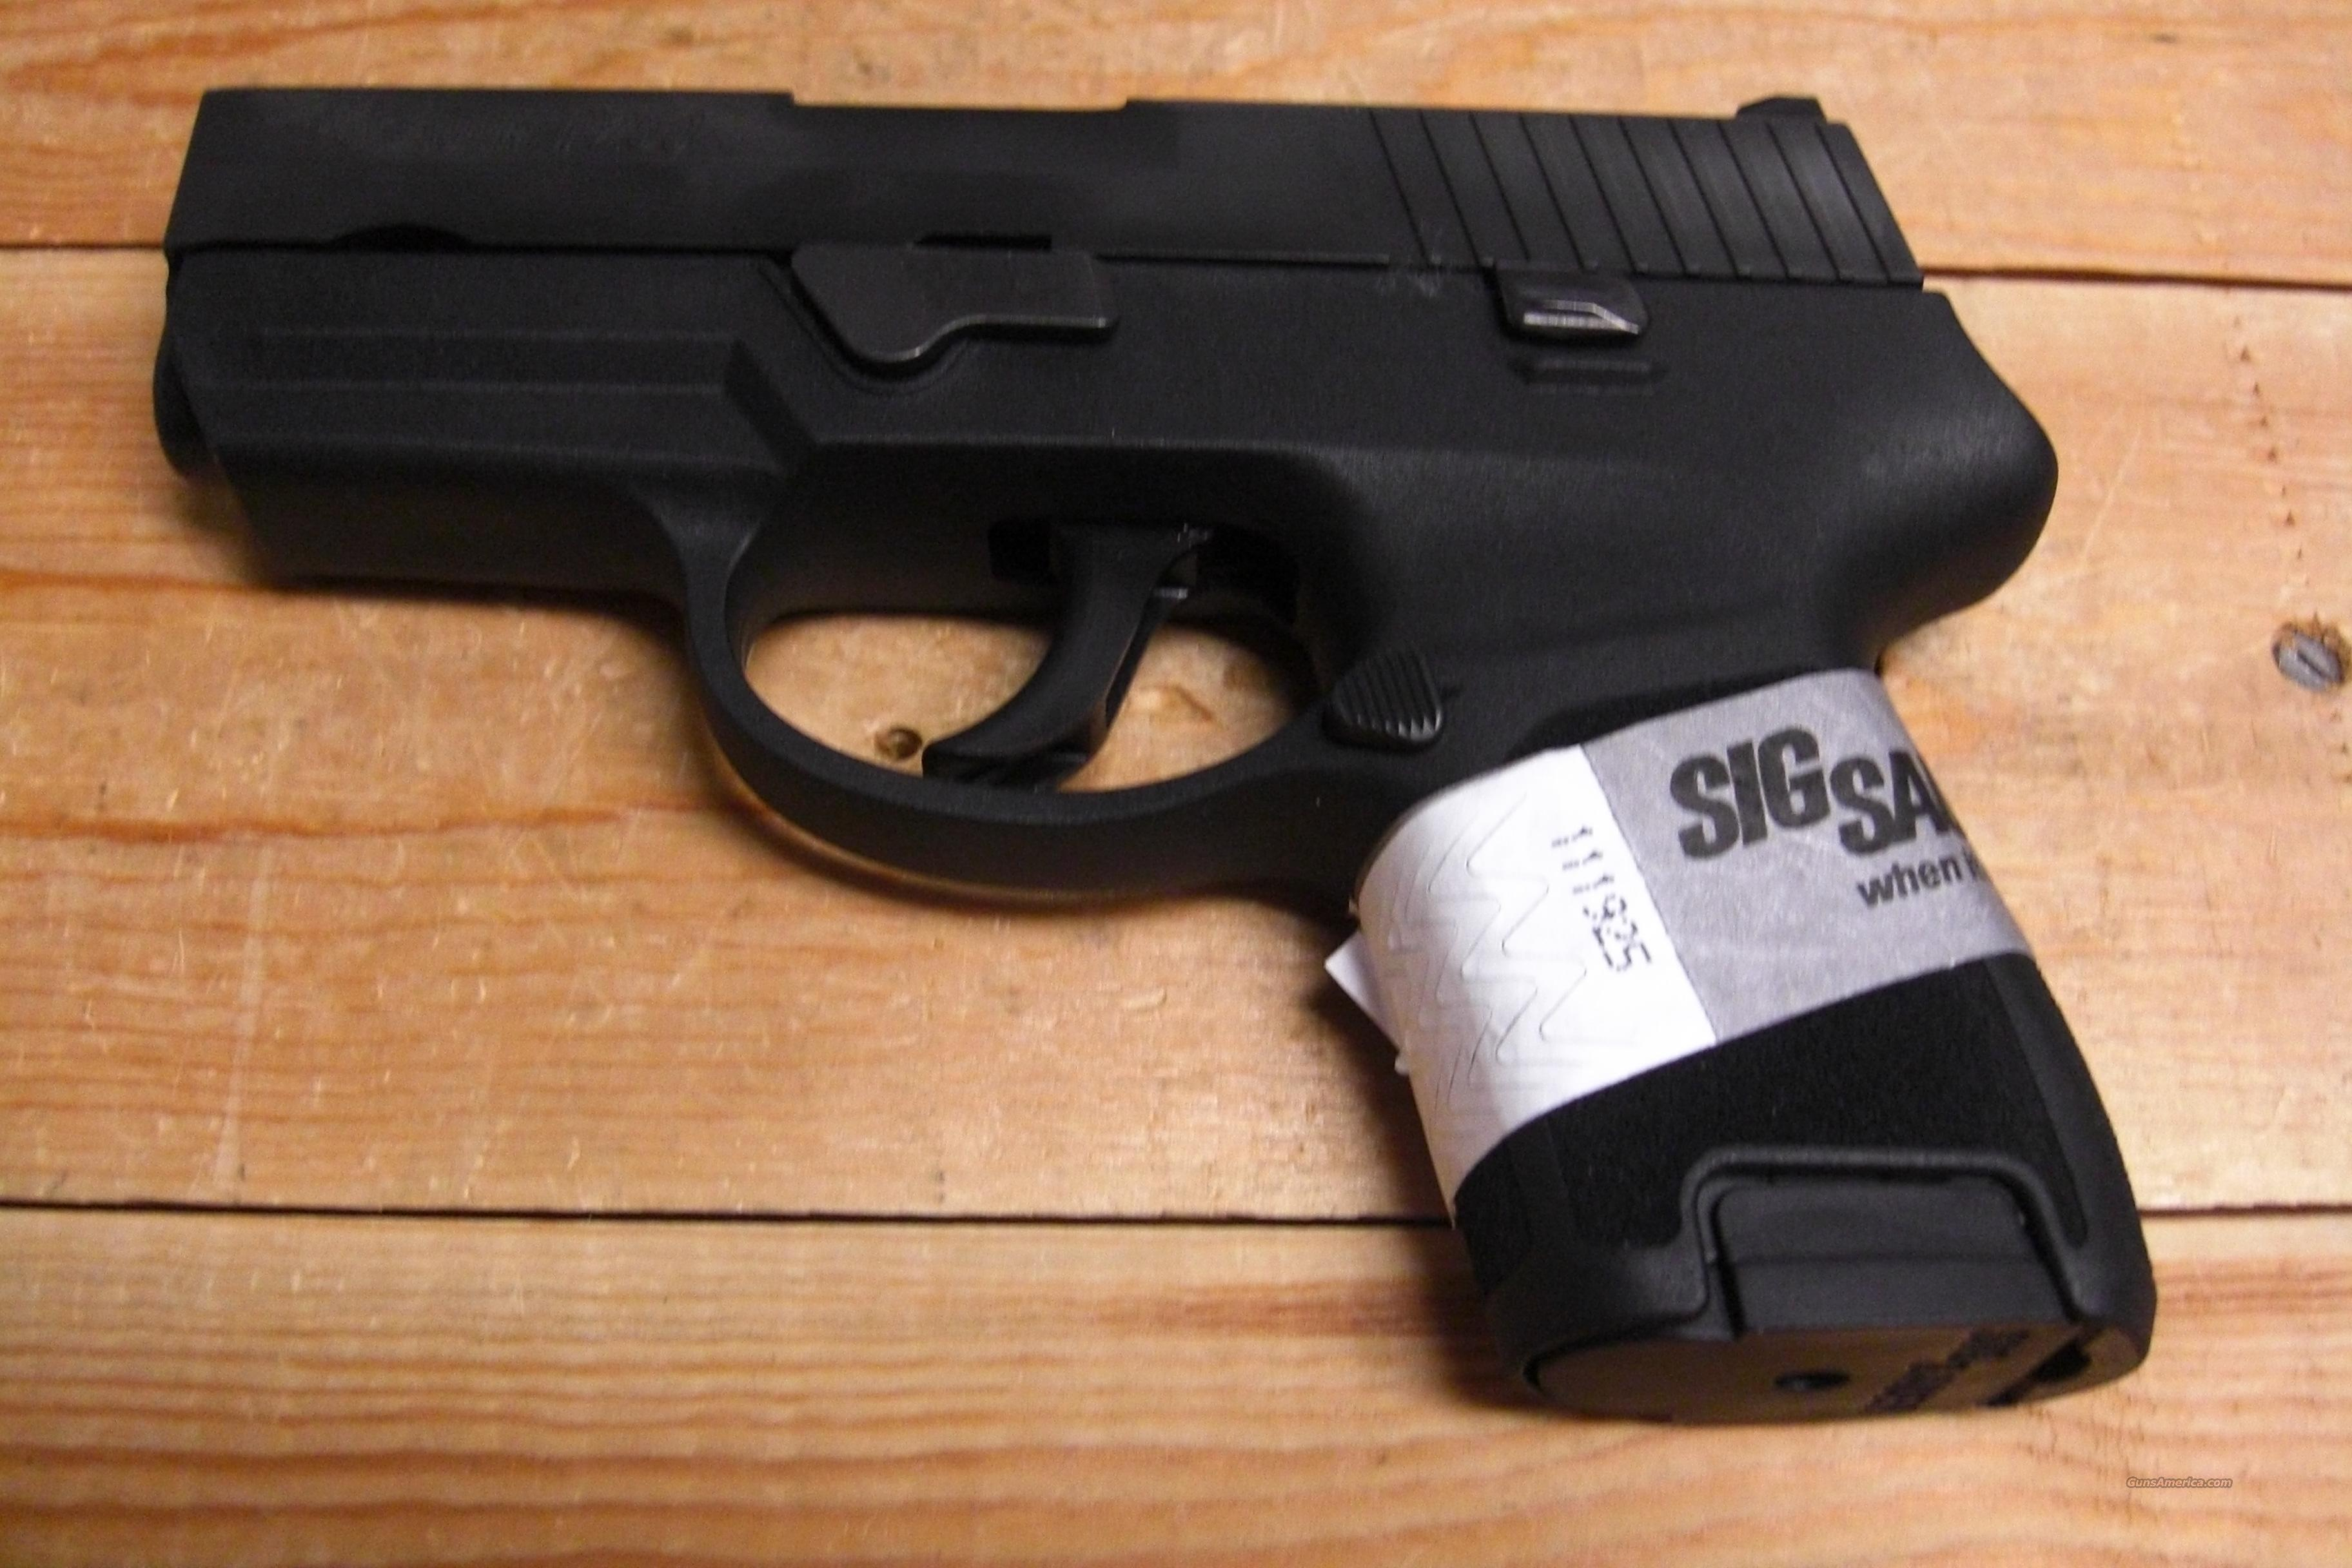 P250 Sub-Compact .45acp  Guns > Pistols > Sig - Sauer/Sigarms Pistols > P250